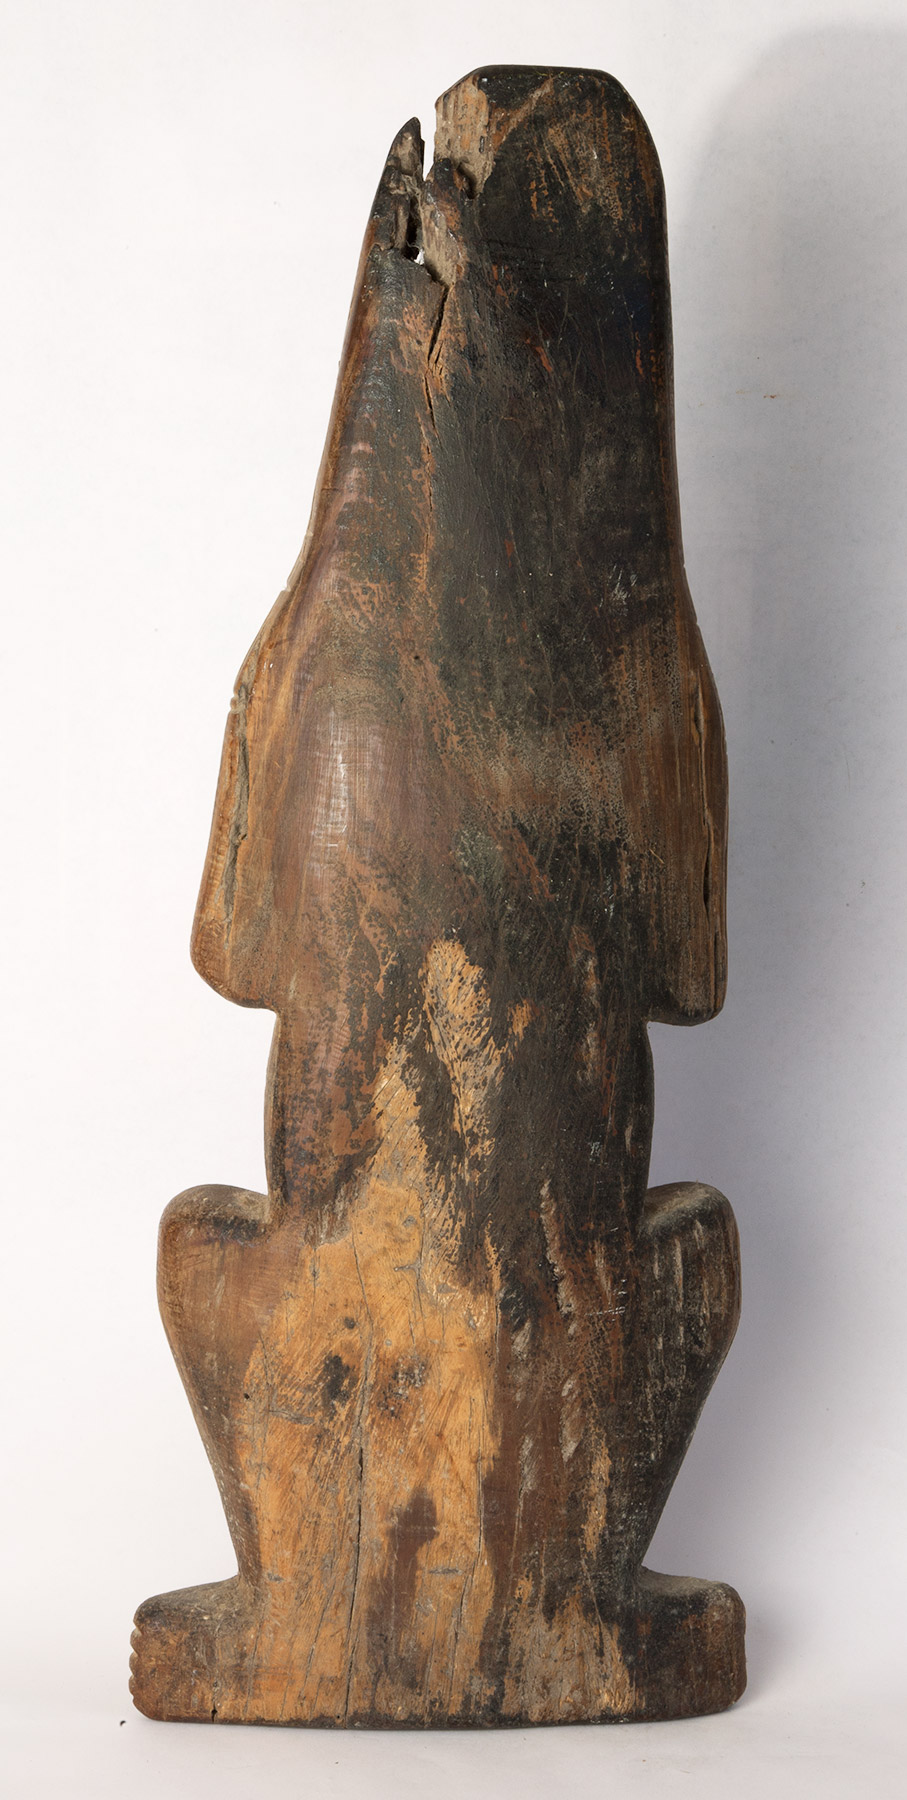 "Carib carved wood figure with hands to head. Possibly 16th century. 21"" high."